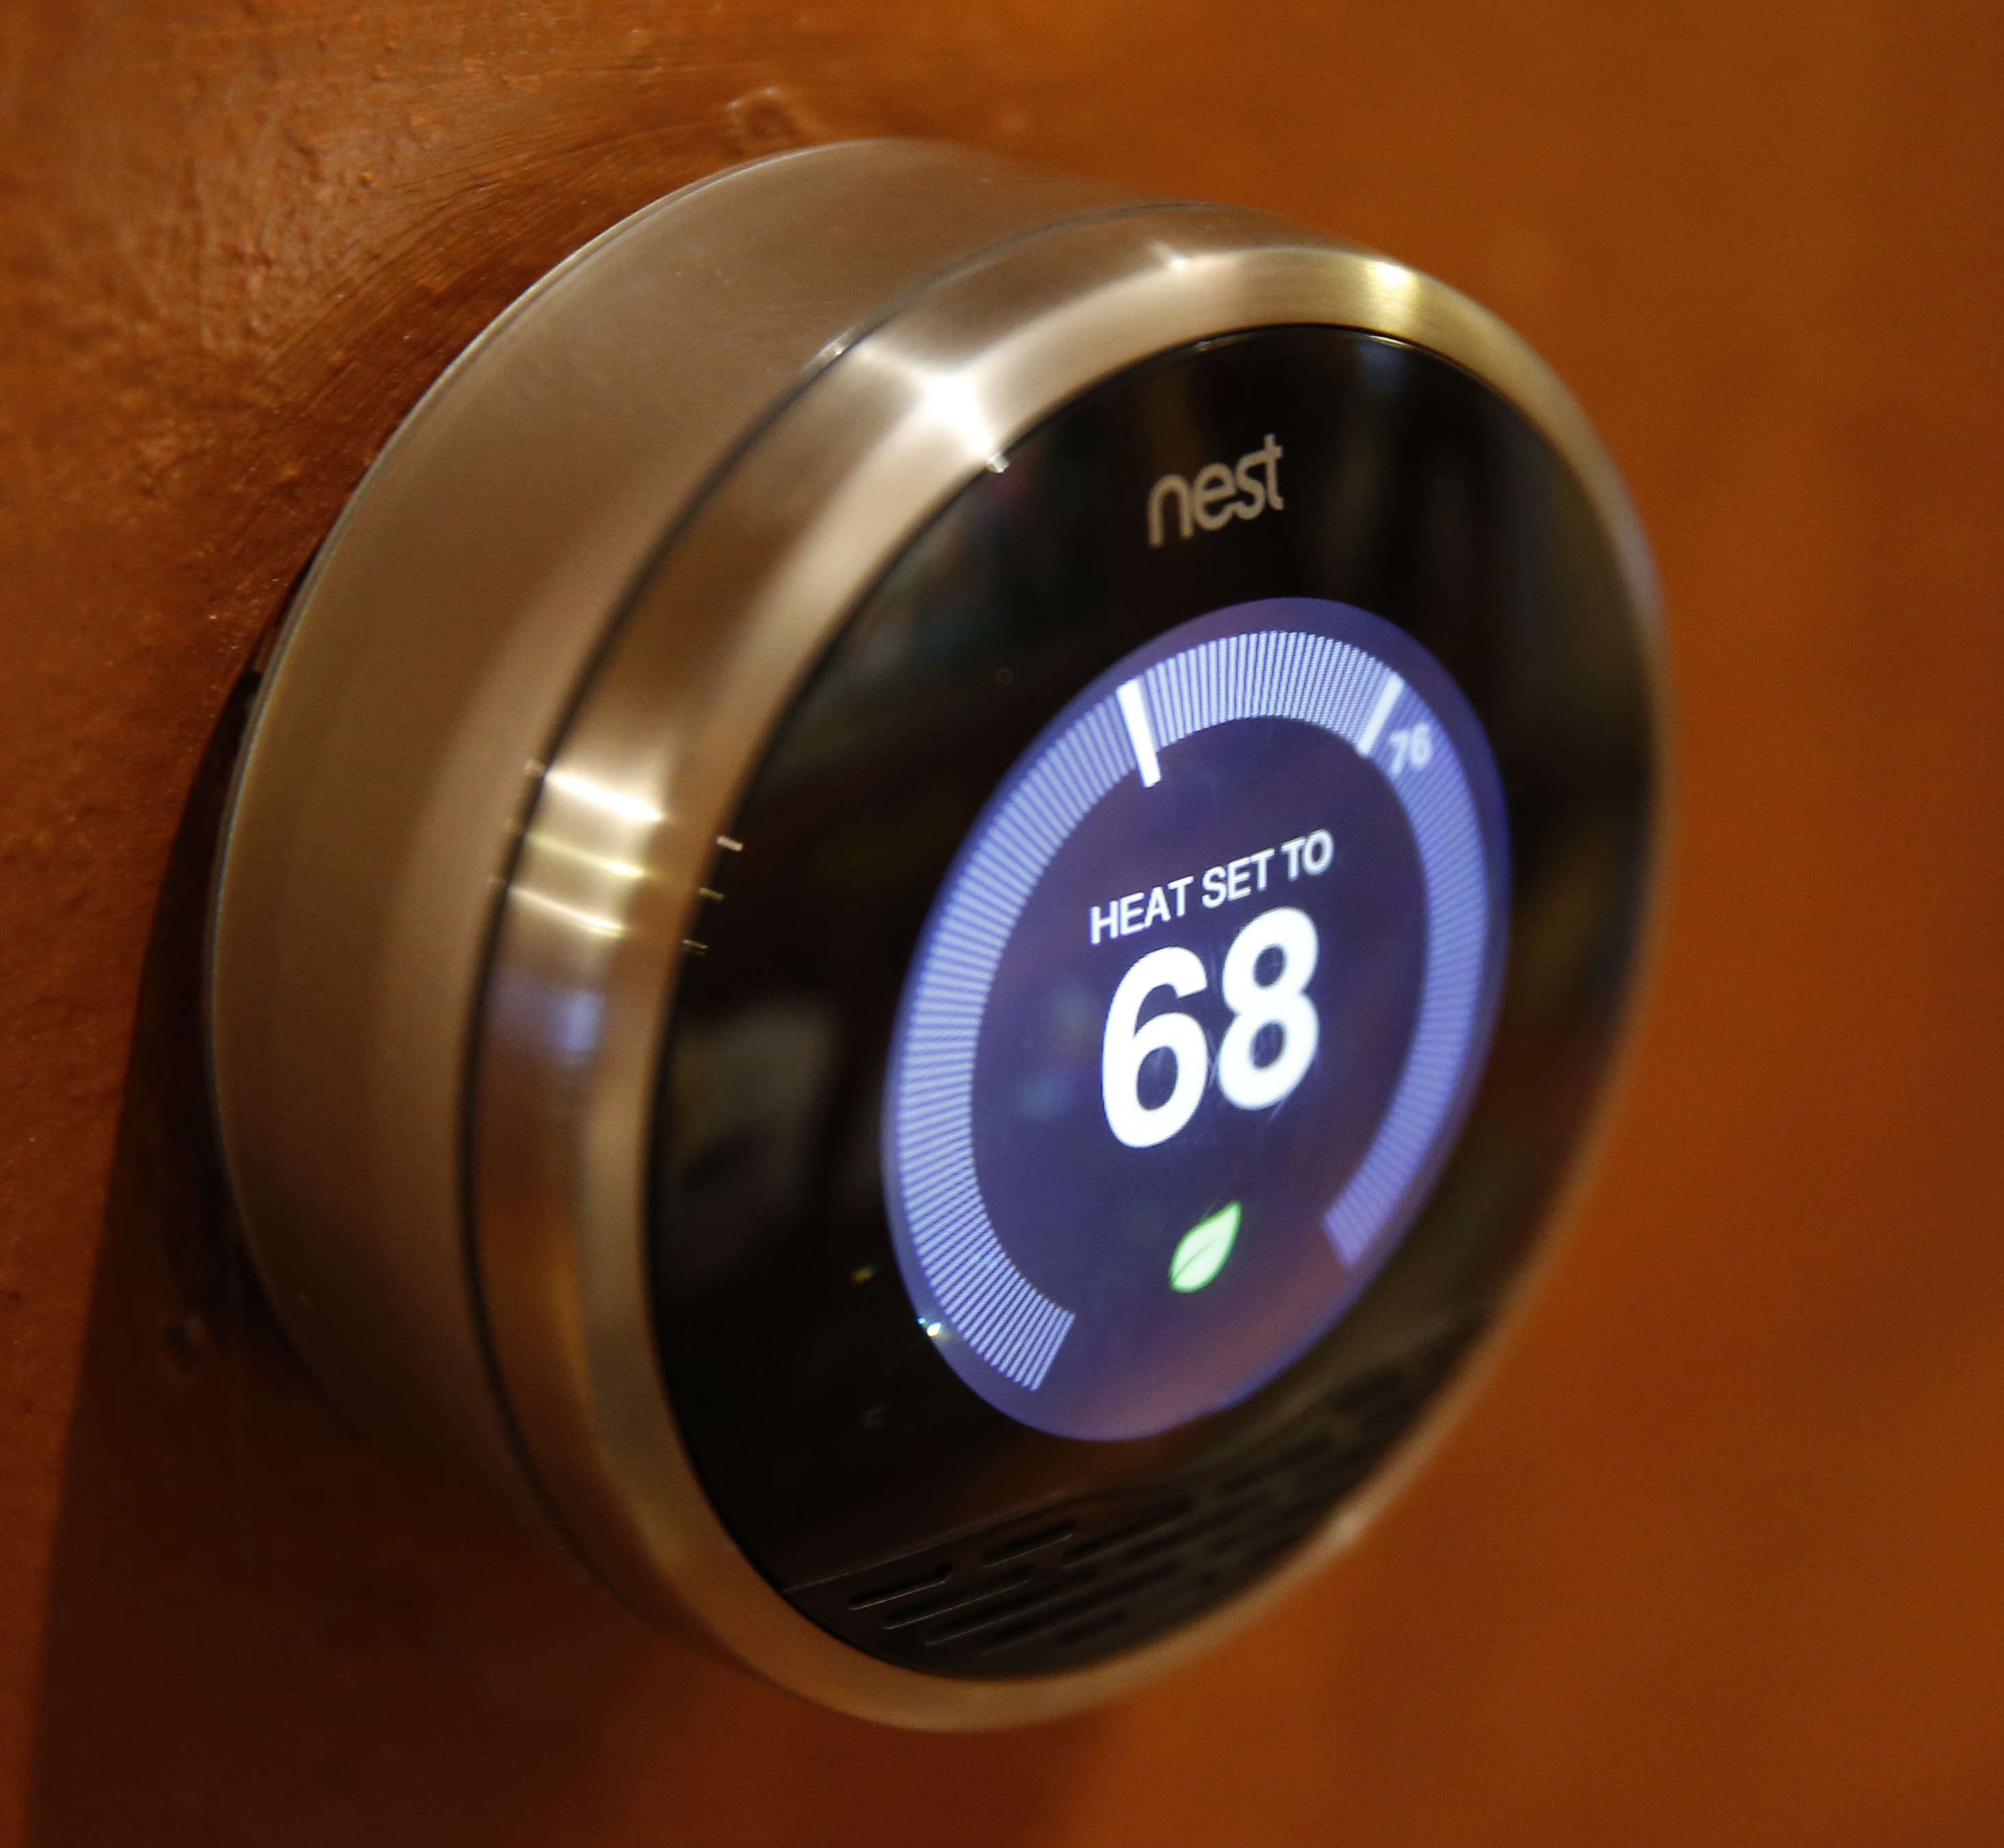 How to Remove a Nest Thermostat | Hunker